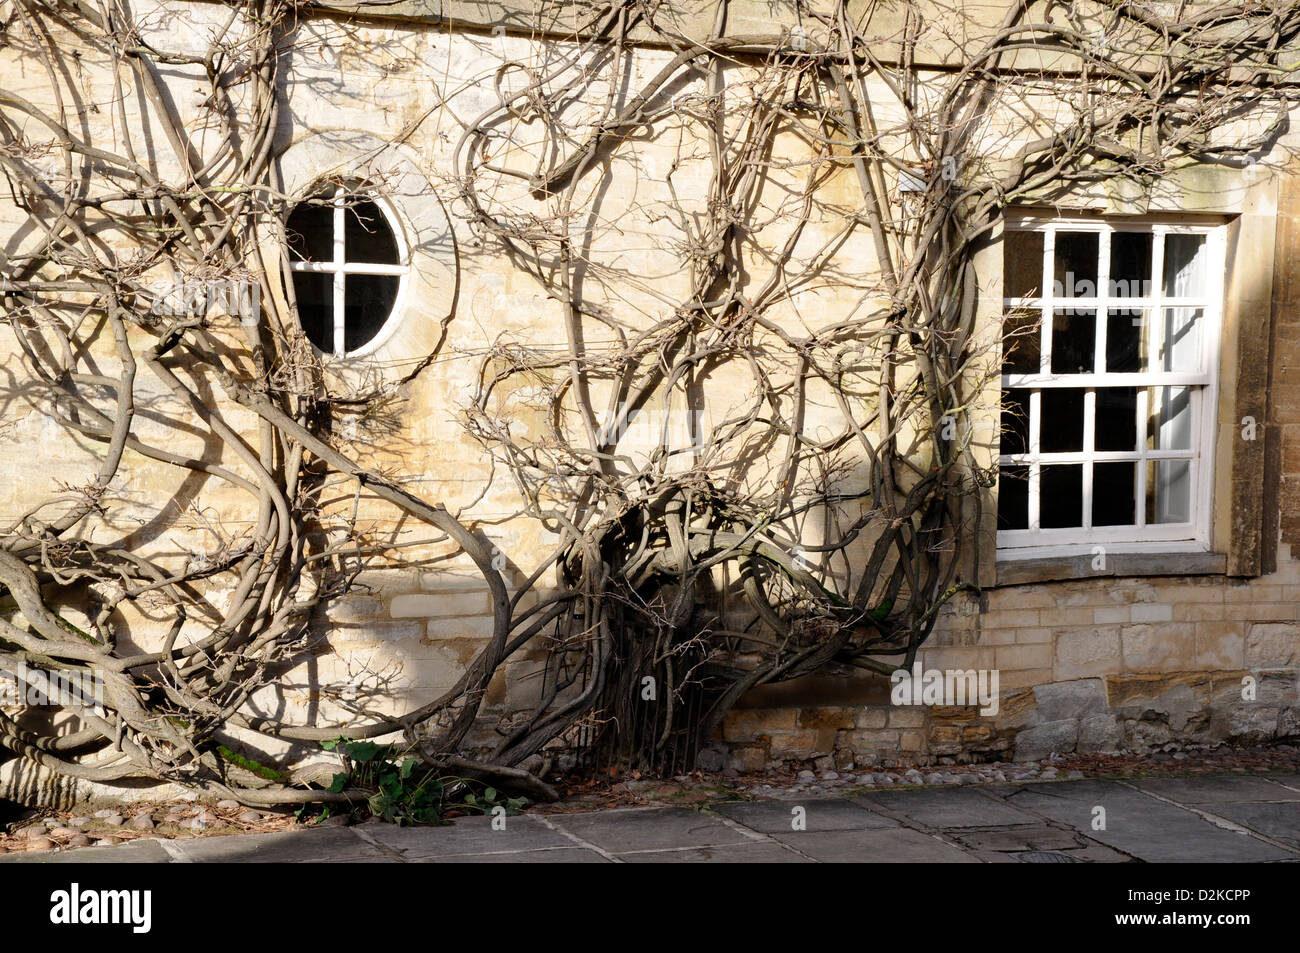 House with vine in Woodstock, Oxfordshire, England, UK - Stock Image